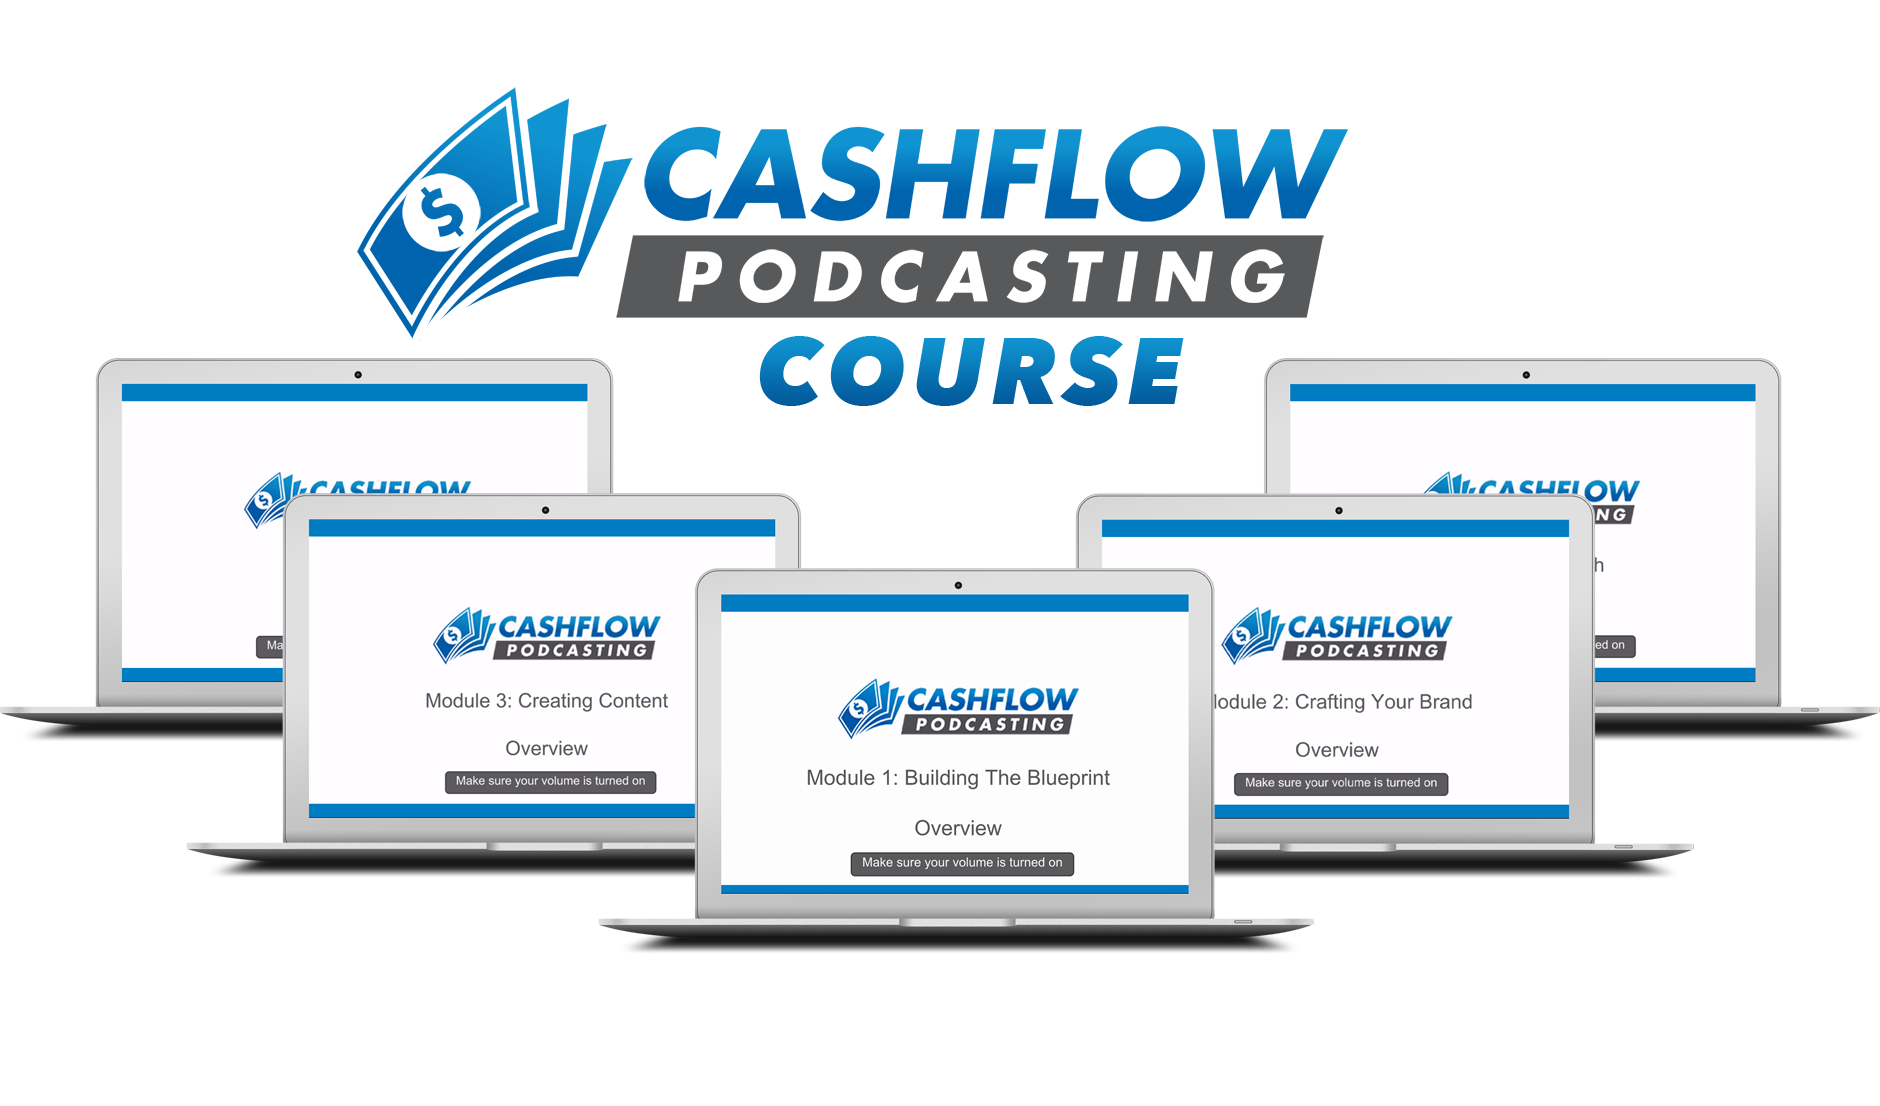 The Cashflow Podcasting Course